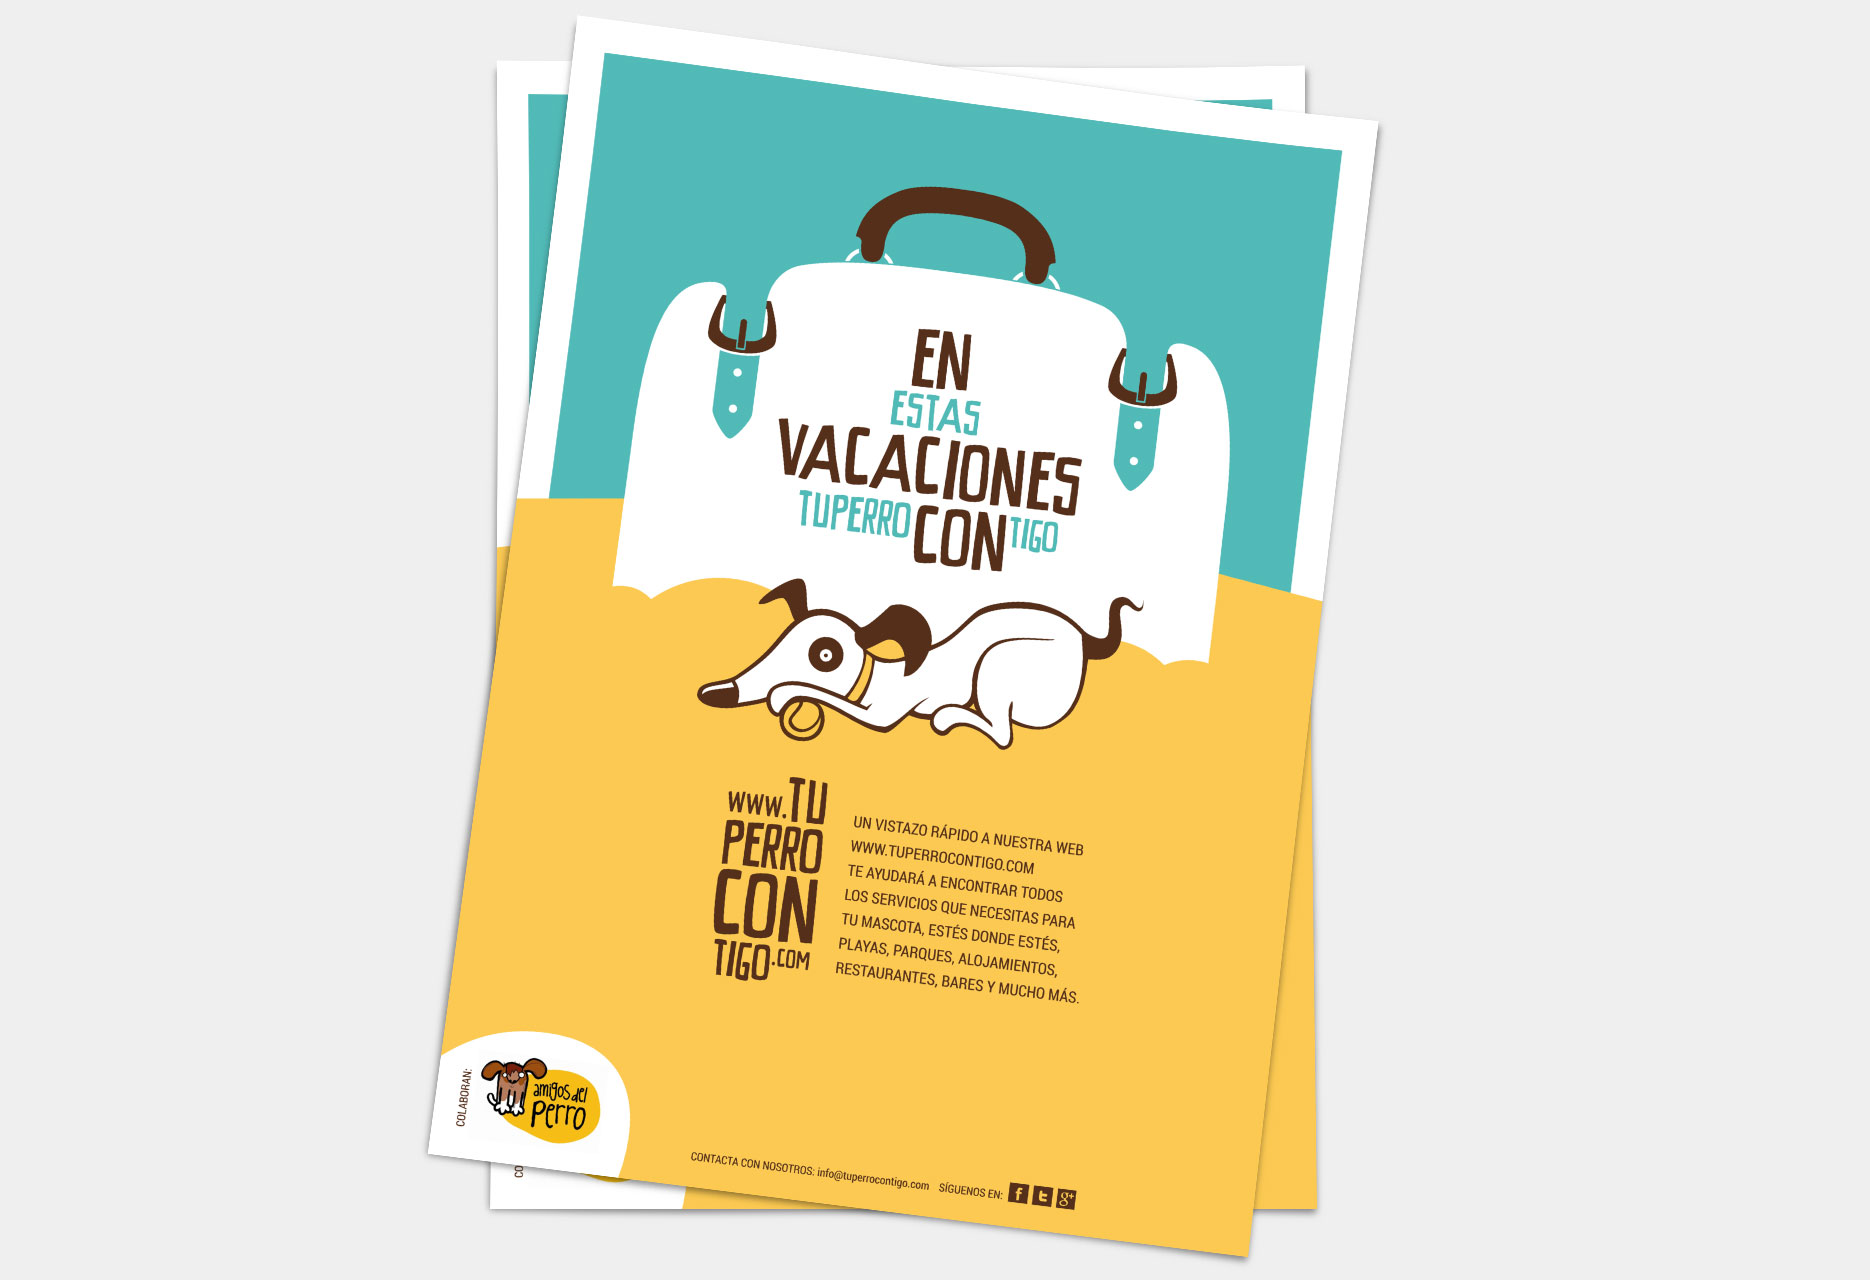 Design of brand and website Tu perro contigo - poster / web design / branding / illustration - 2010